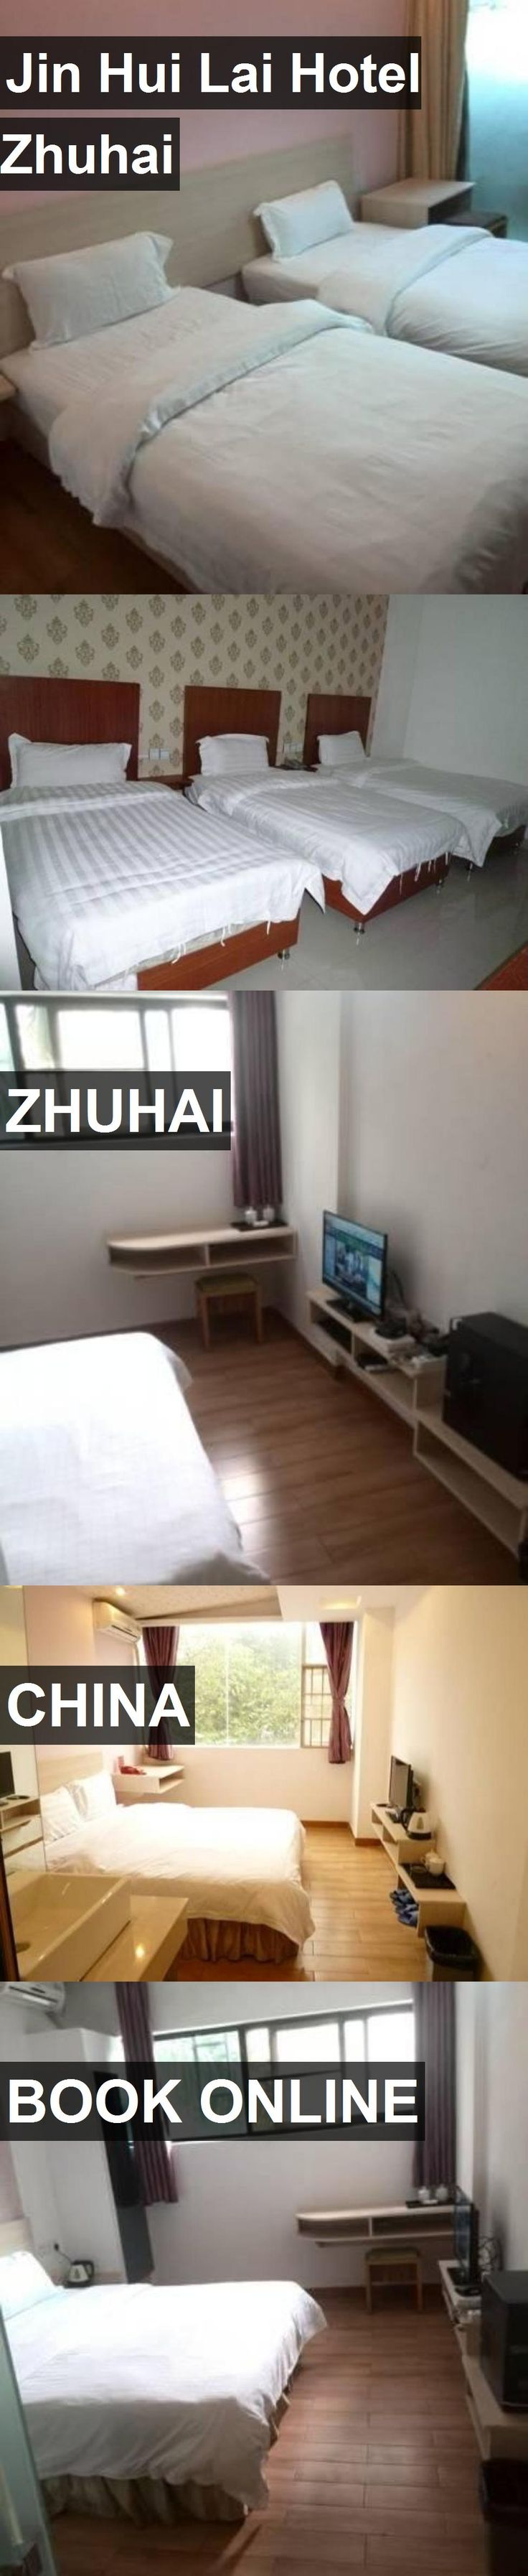 Jin Hui Lai Hotel Zhuhai in Zhuhai, China. For more information, photos, reviews and best prices please follow the link. #China #Zhuhai #travel #vacation #hotel